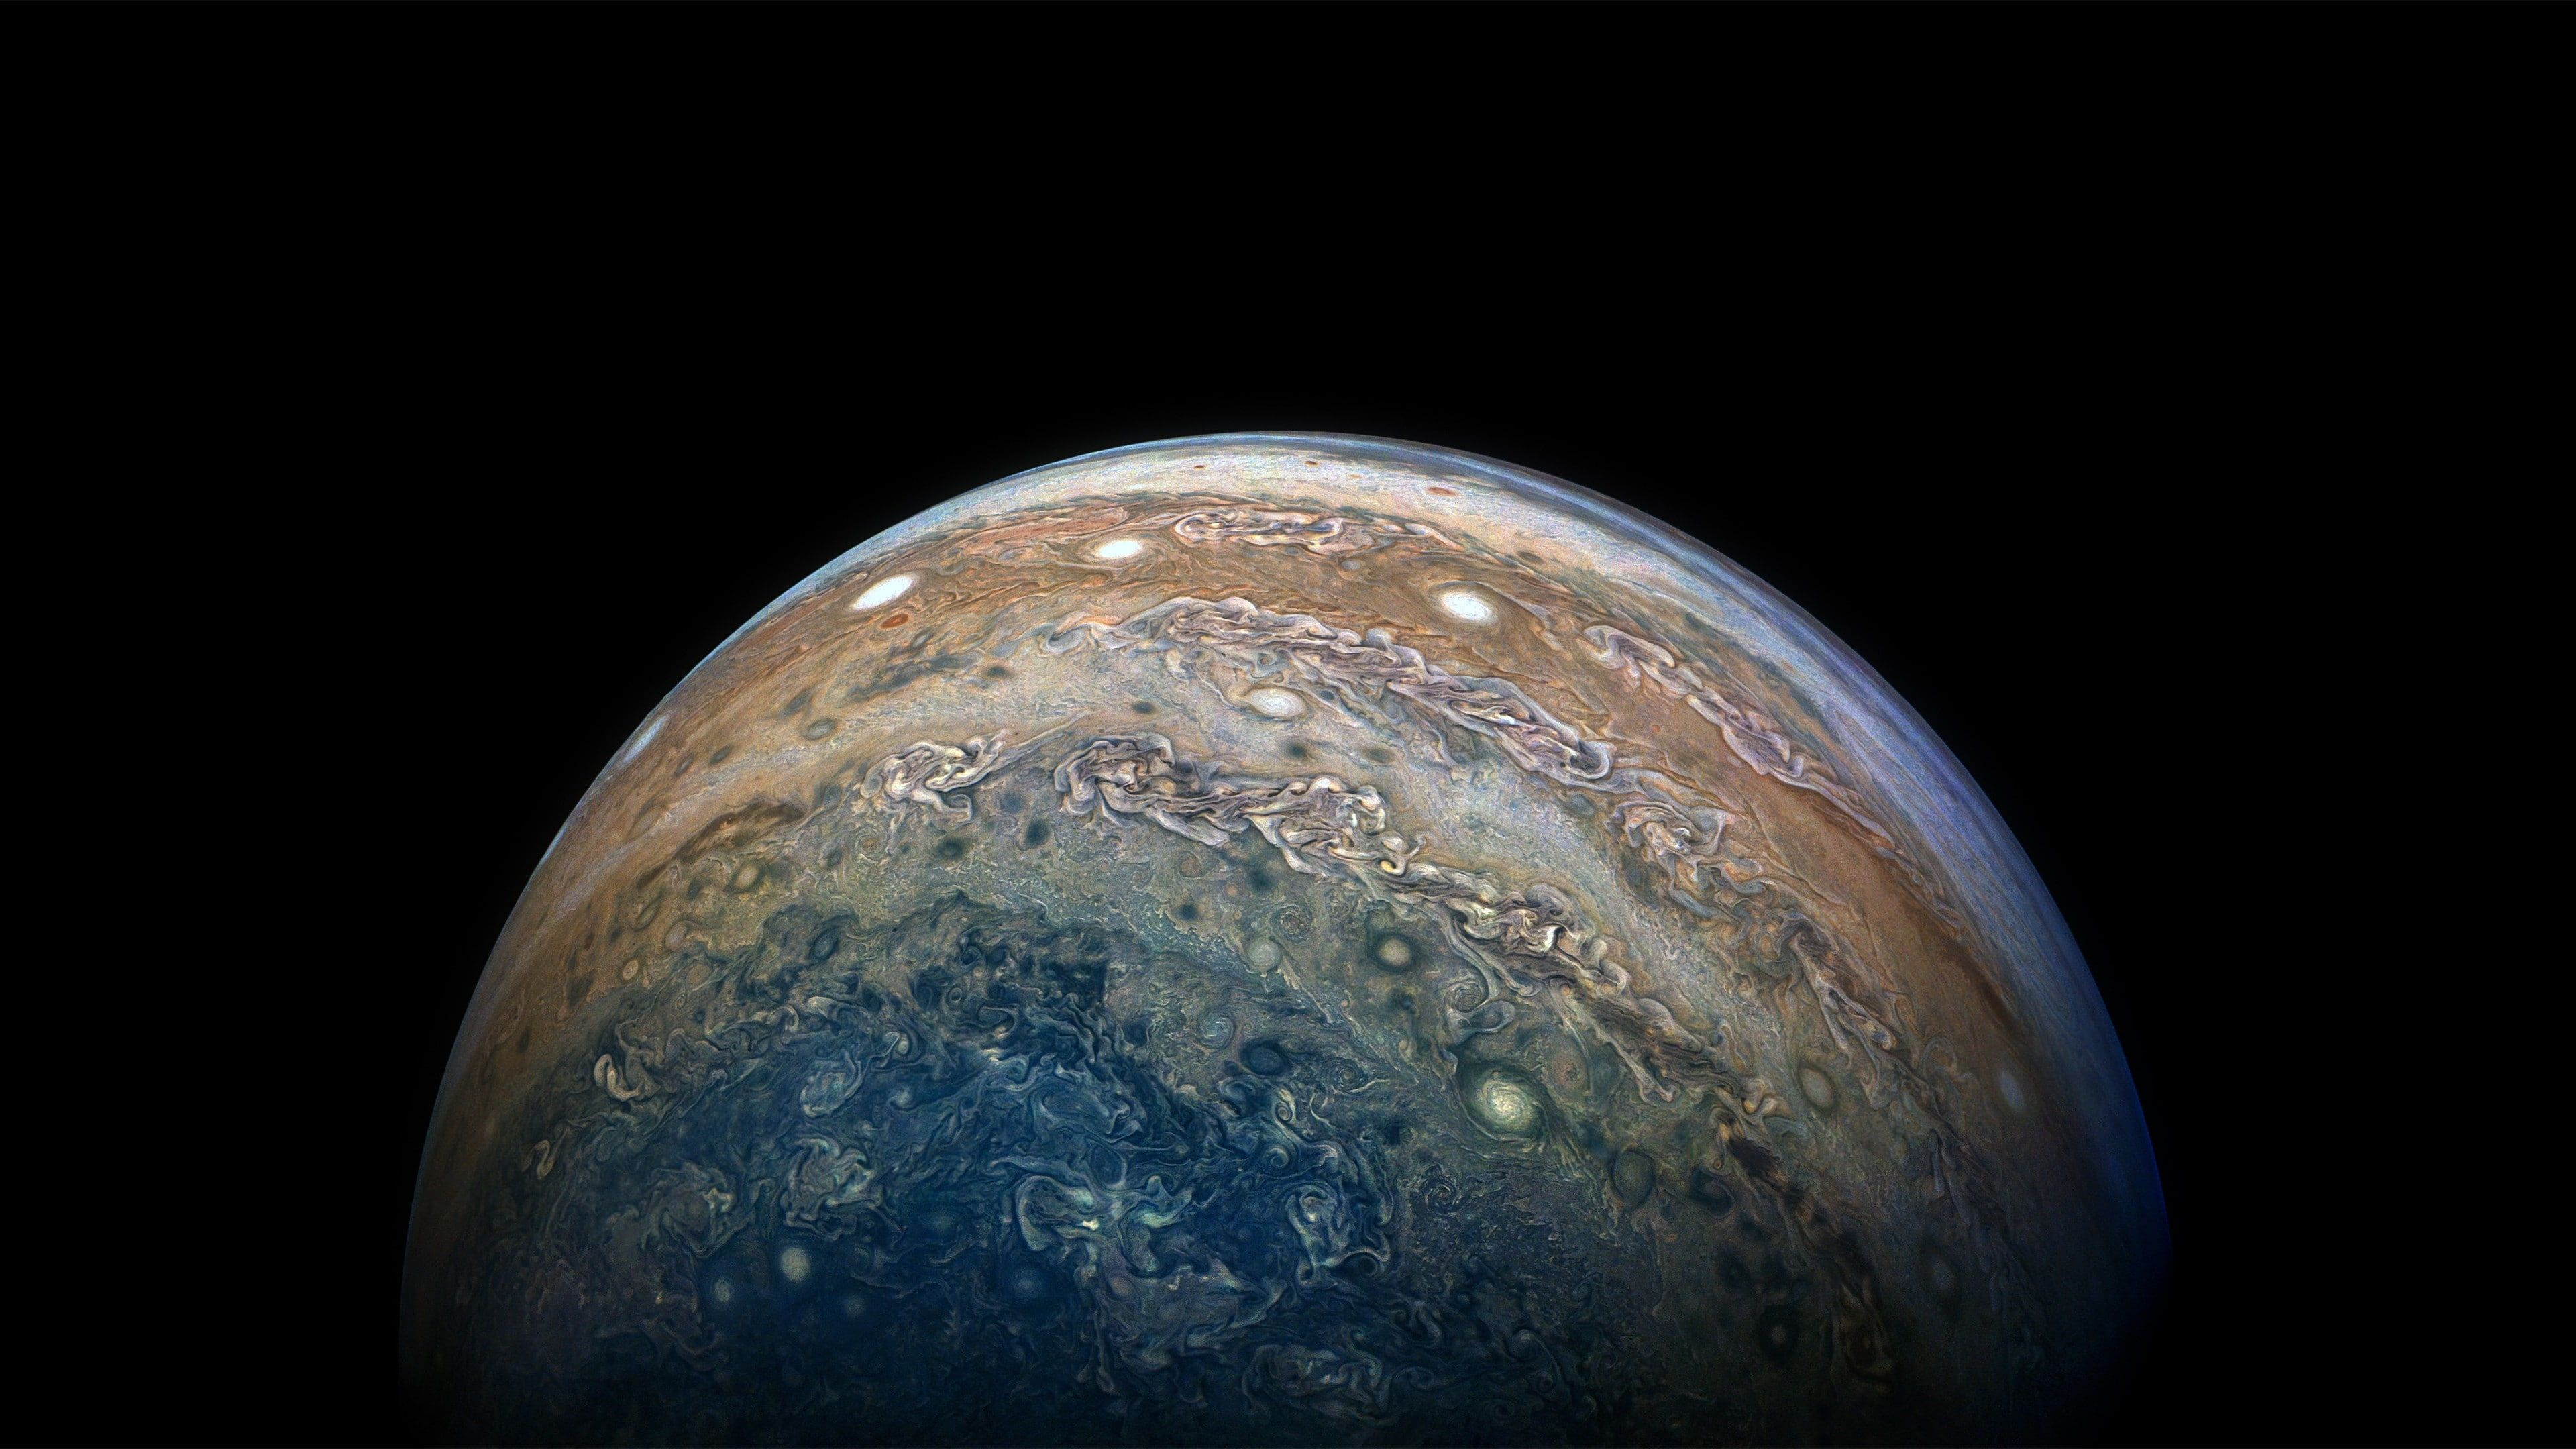 Jupiter Planet Atmosphere Earth Astronomical Object Nasa Juno Spacecraft Photography Universe Space Juno Space Photography In 2020 Planets Planets Art Jupiter